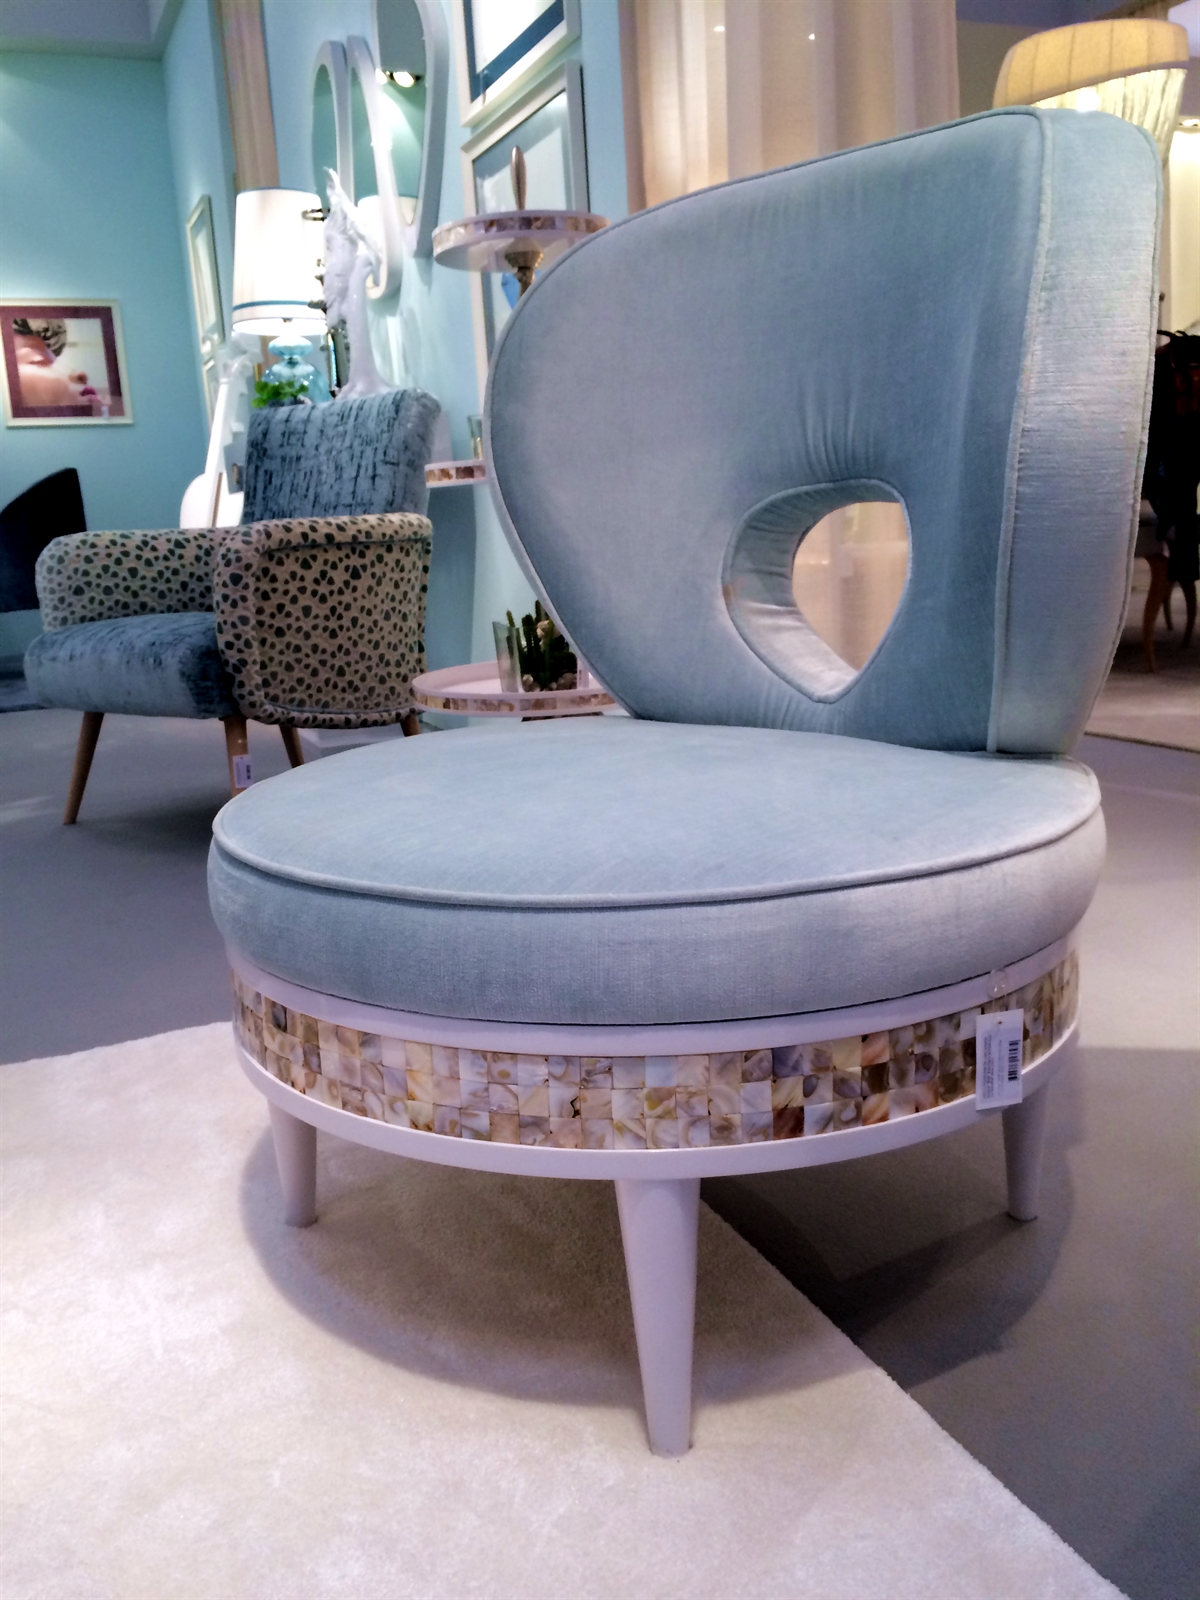 38 maison et objet 2015 paris furniture and home decorating fair interior design recycling shabby handmade oriental chinoiserie trends targi meblowe w paryzu modne wnetrza FORelements blog